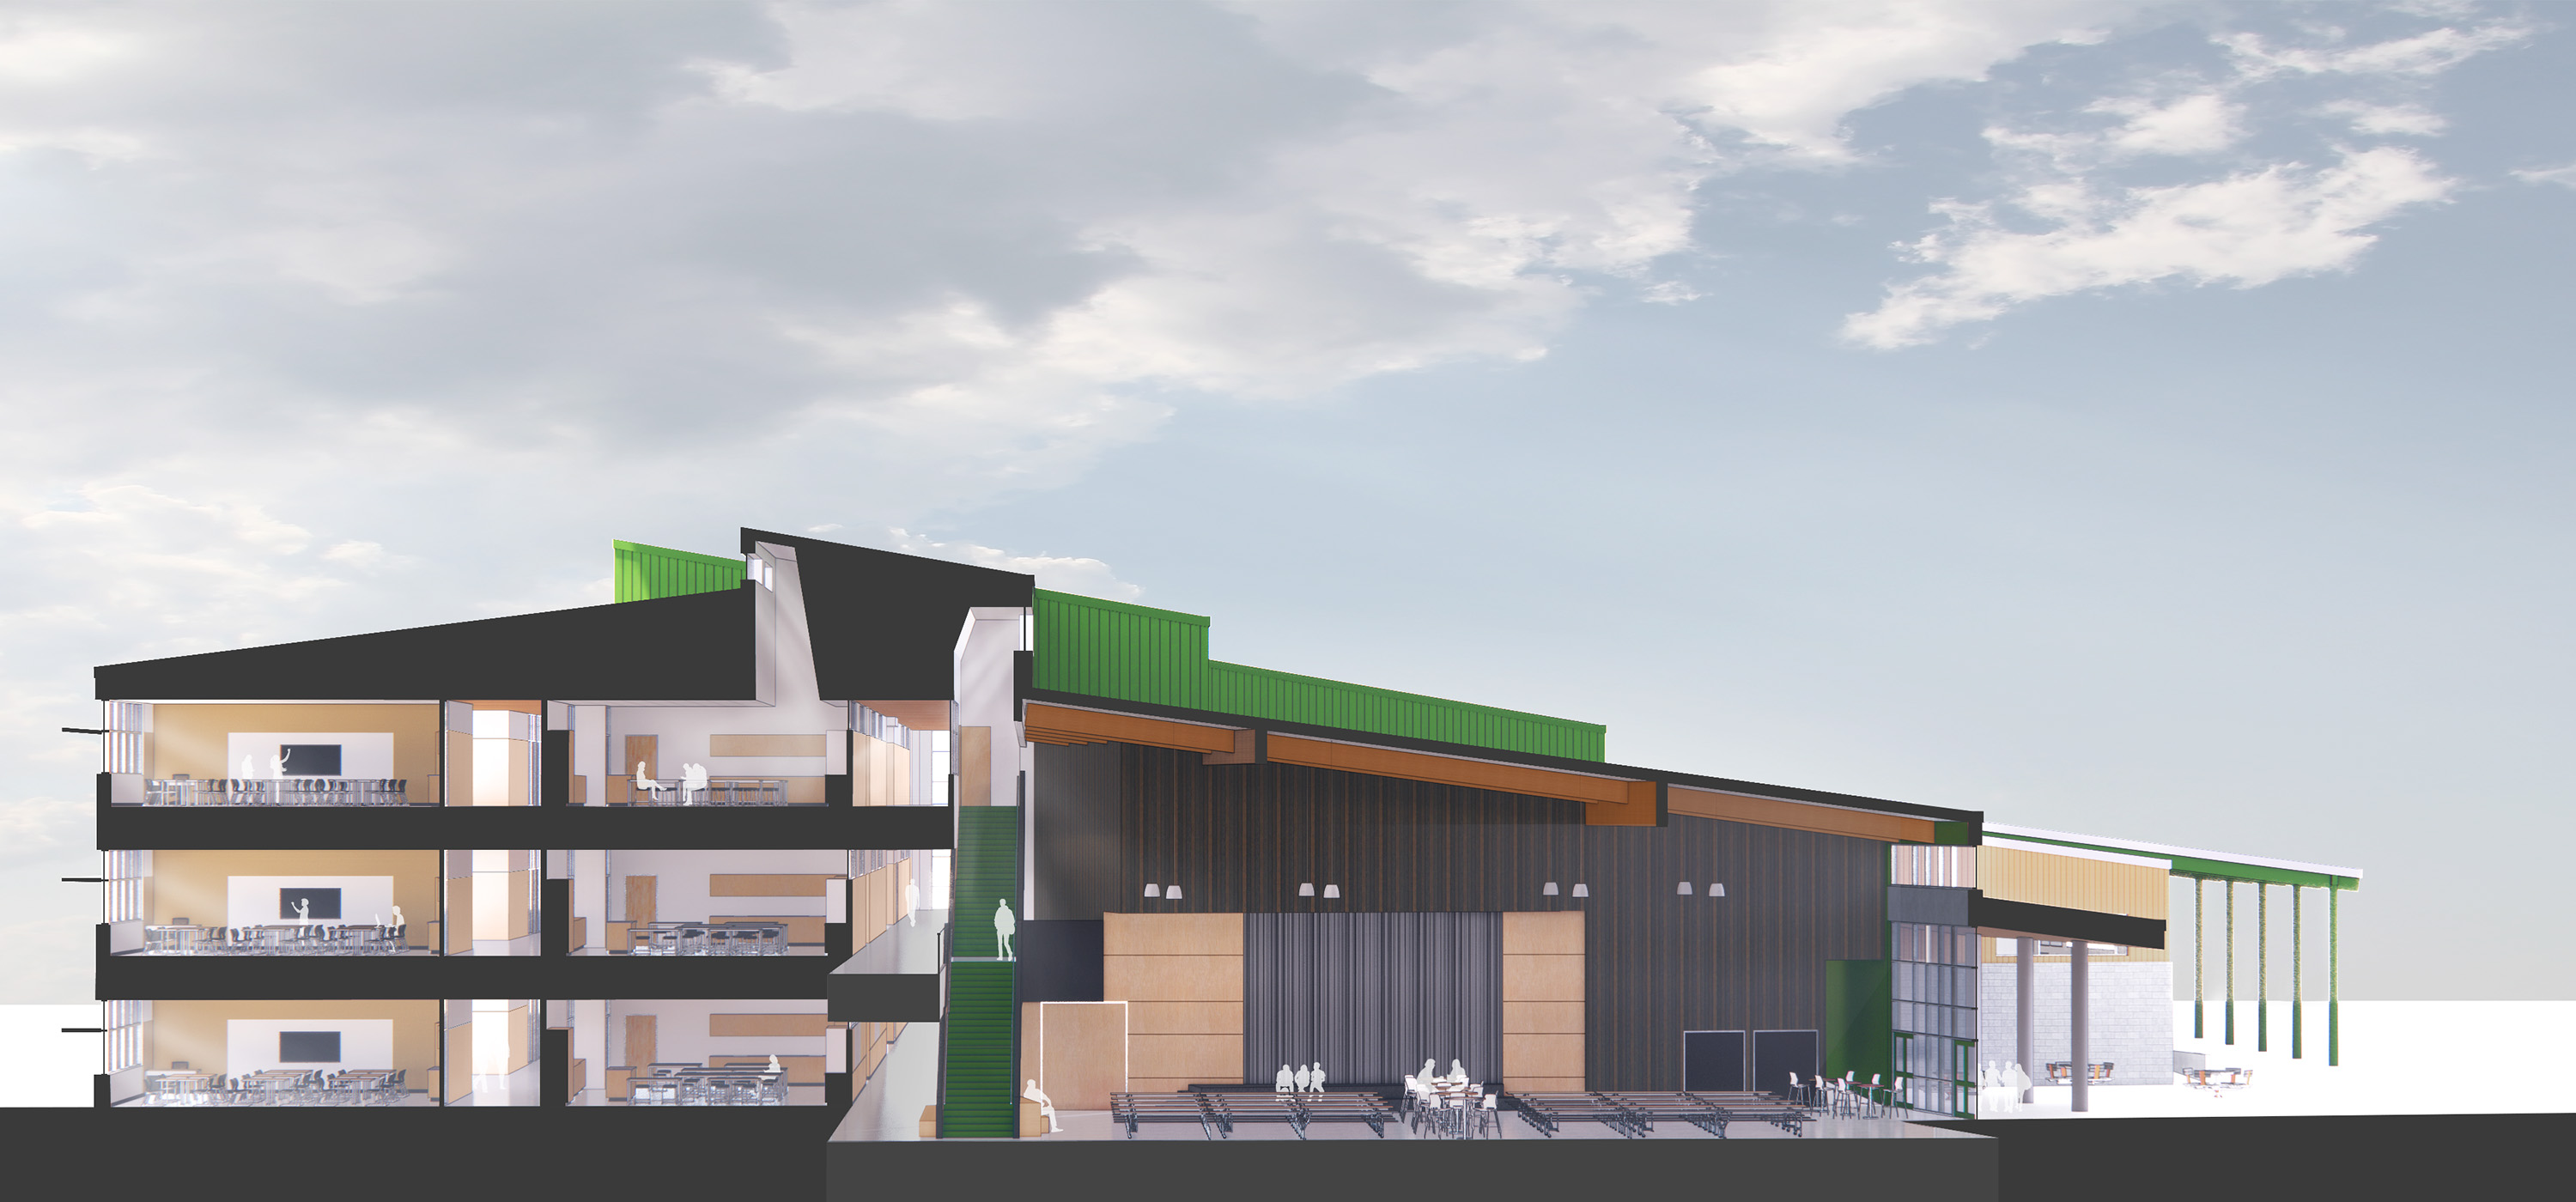 Rendering of the building and seeing multiple floors from a sideview.